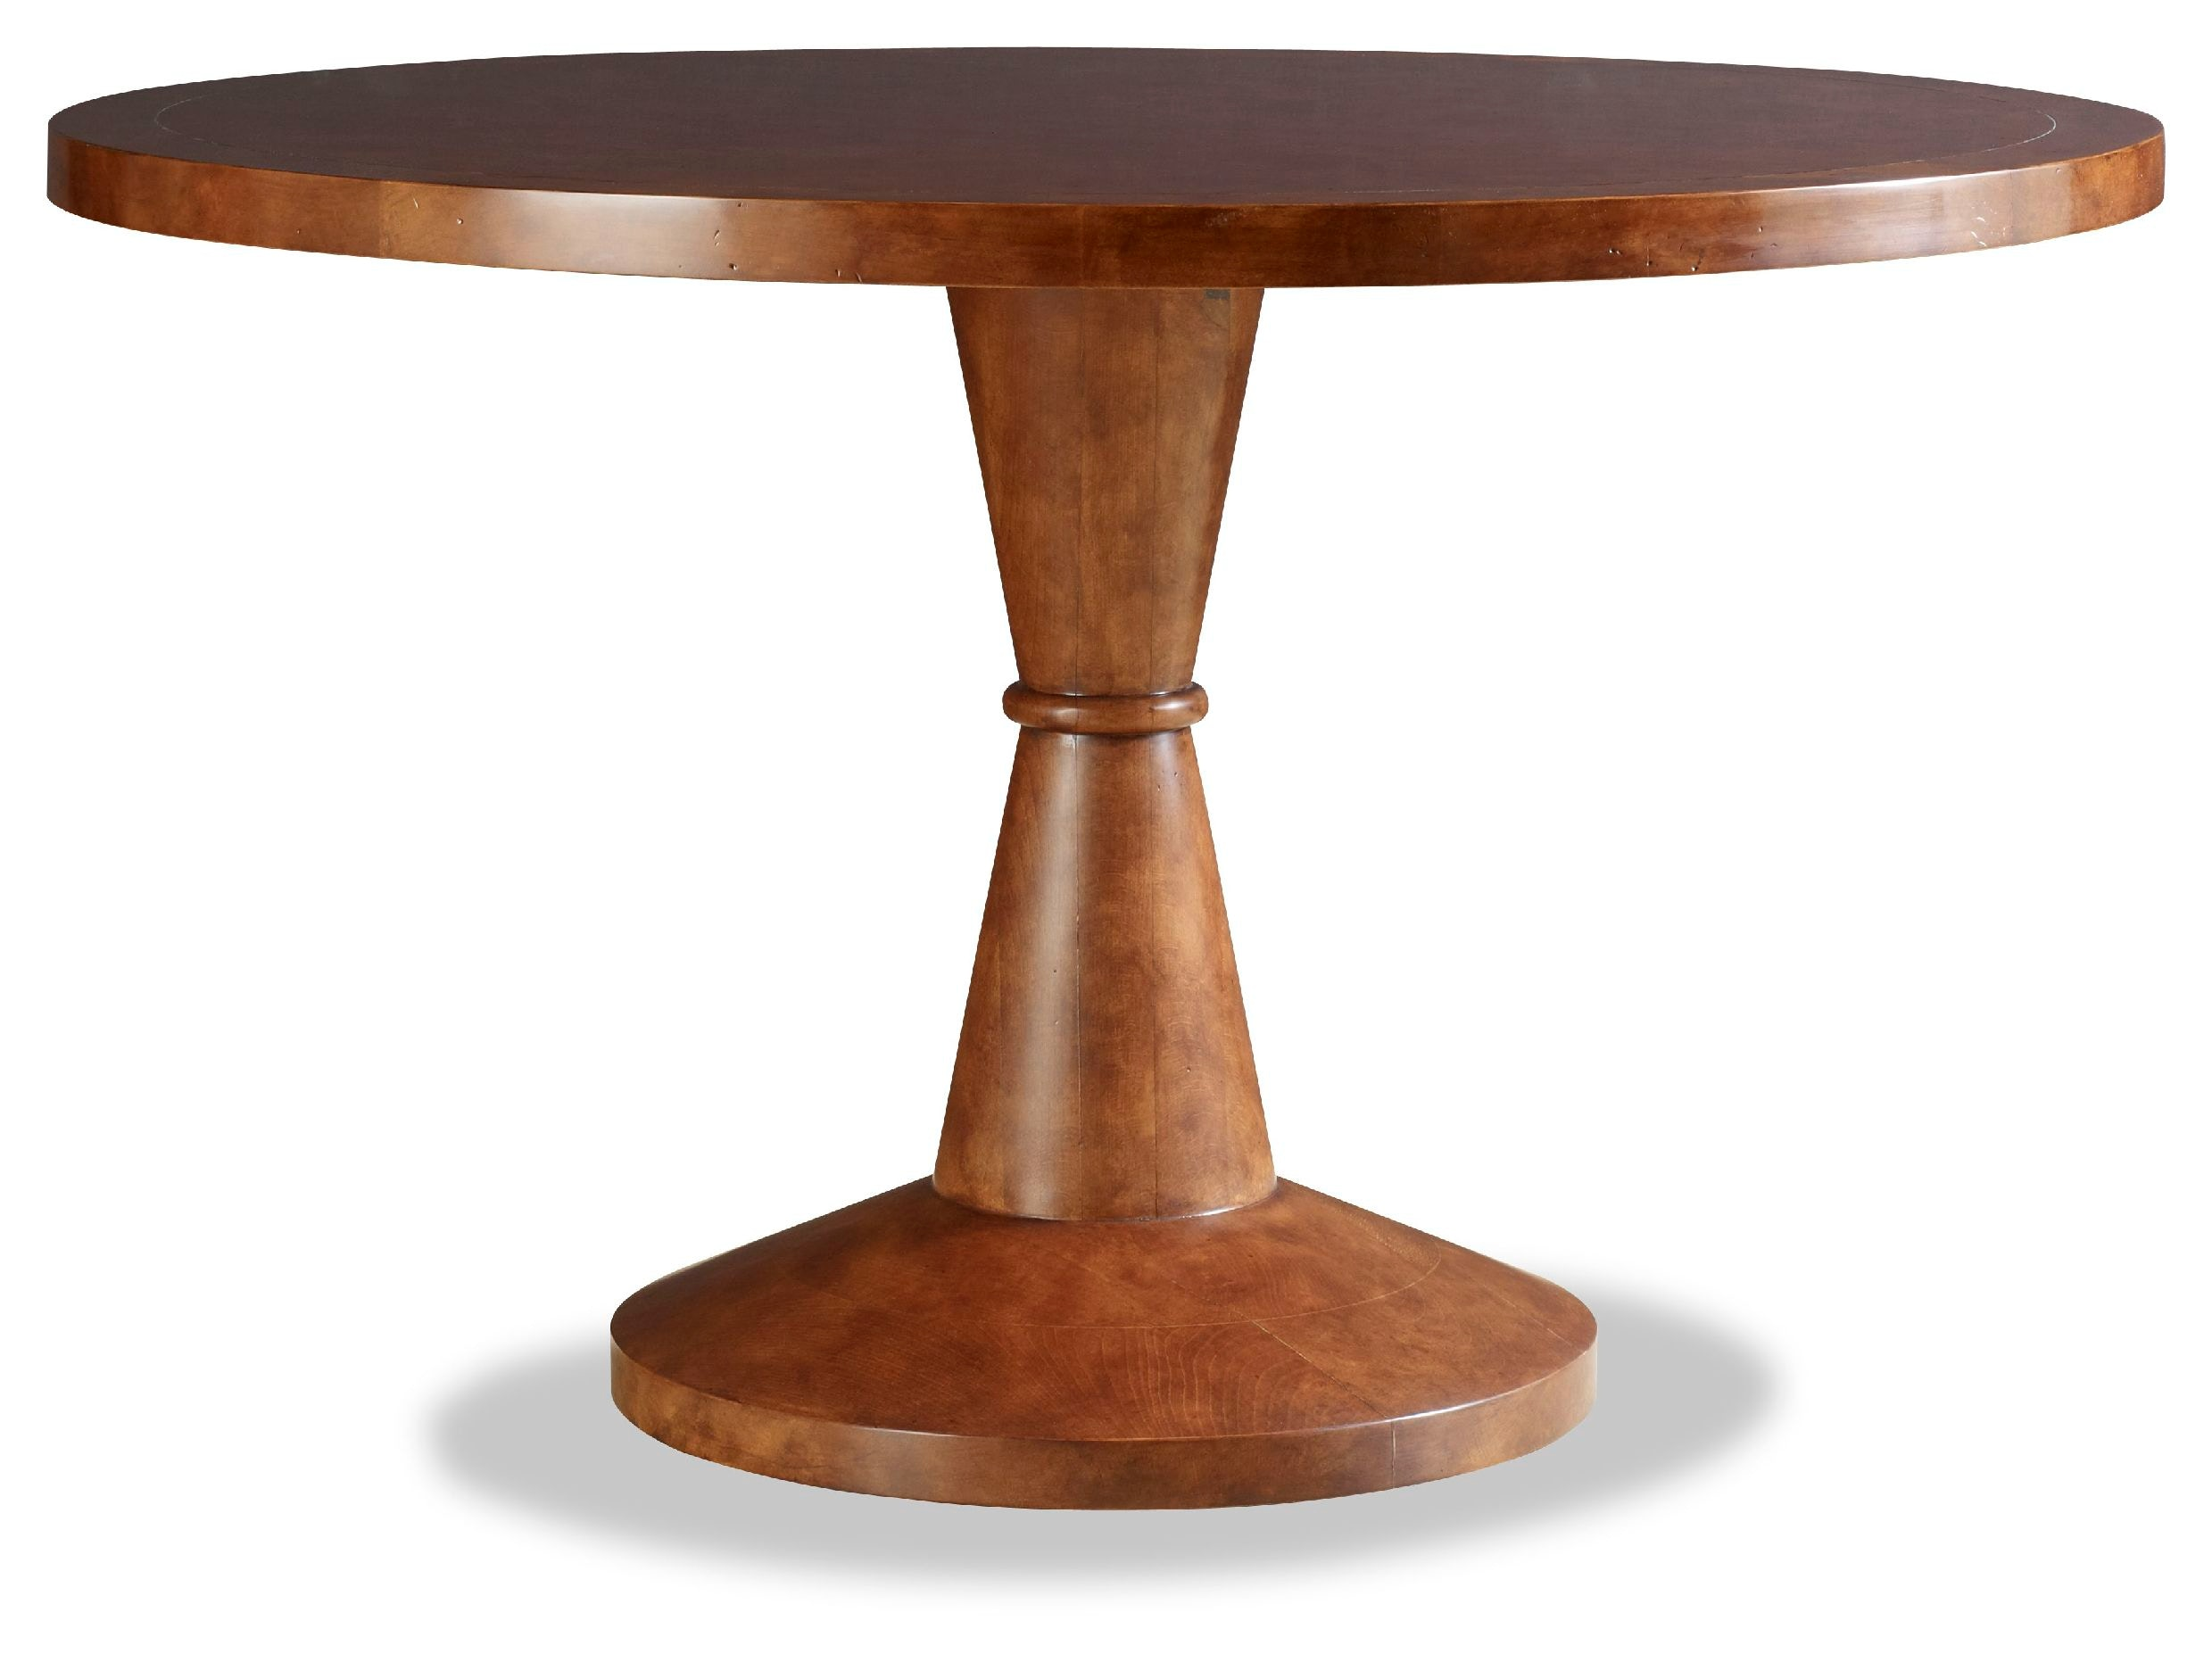 1026 20. Byron Table